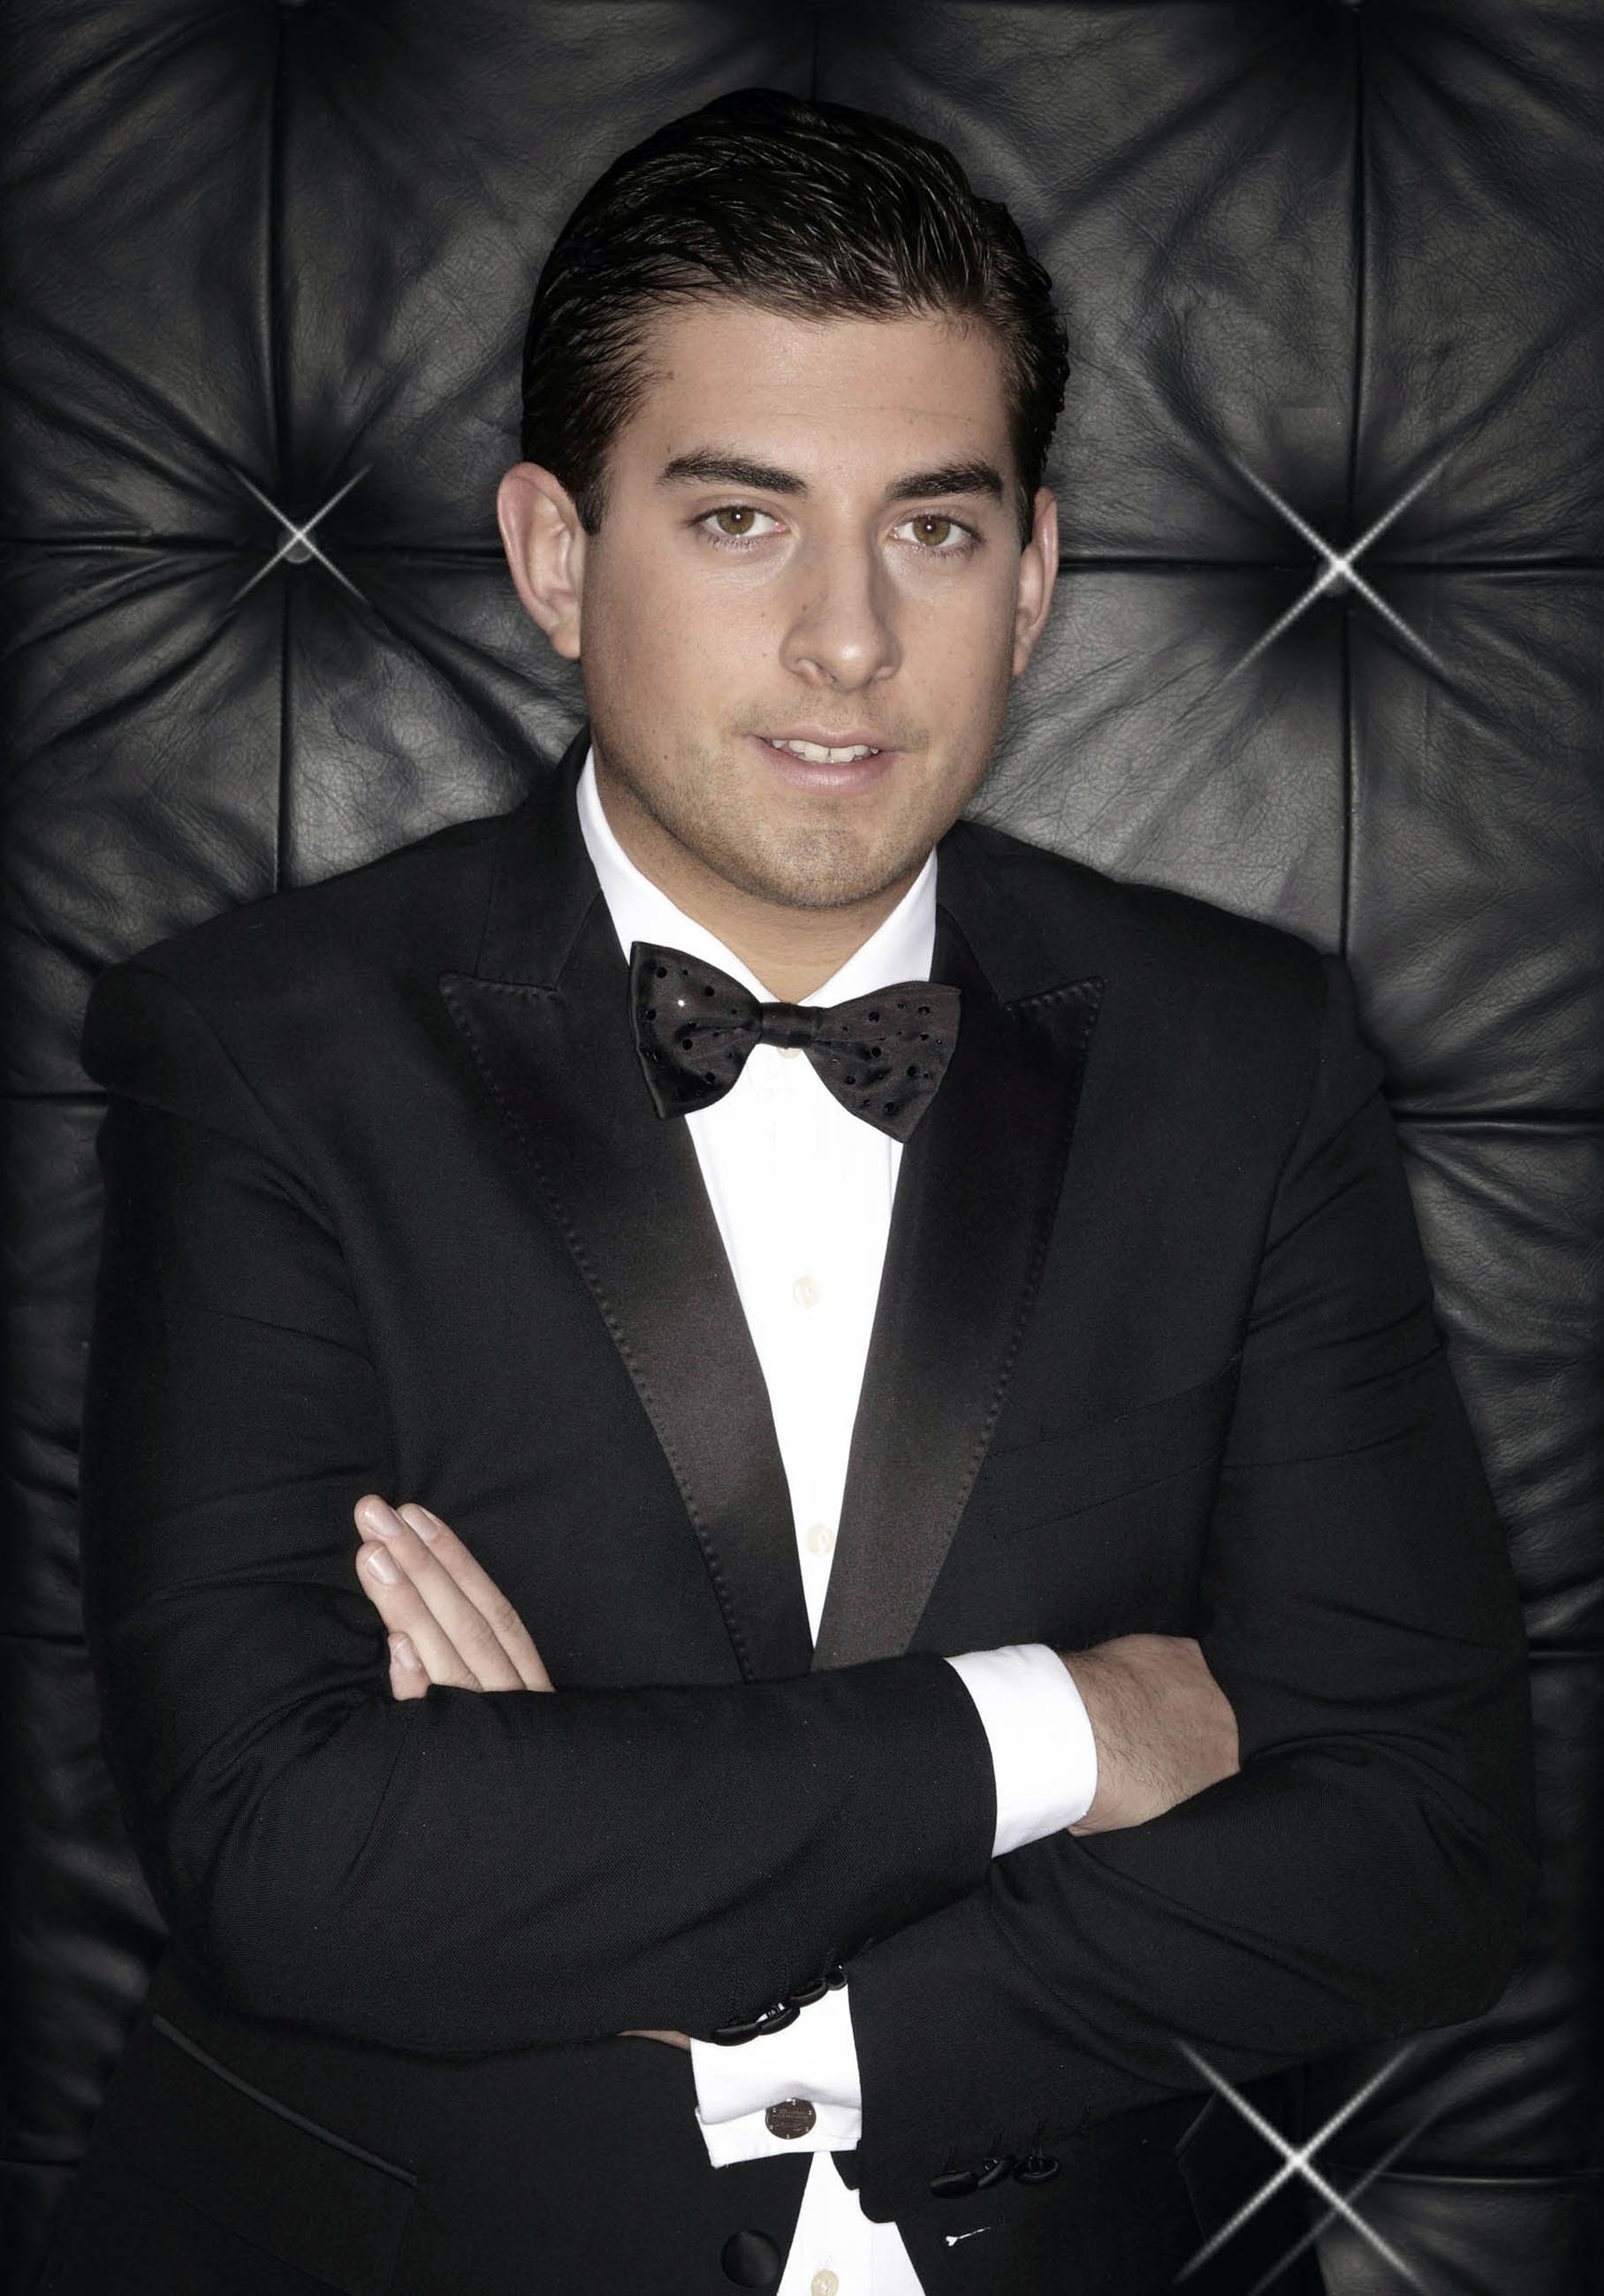 Arg will appear at Lakeside to sign copies of his new book.